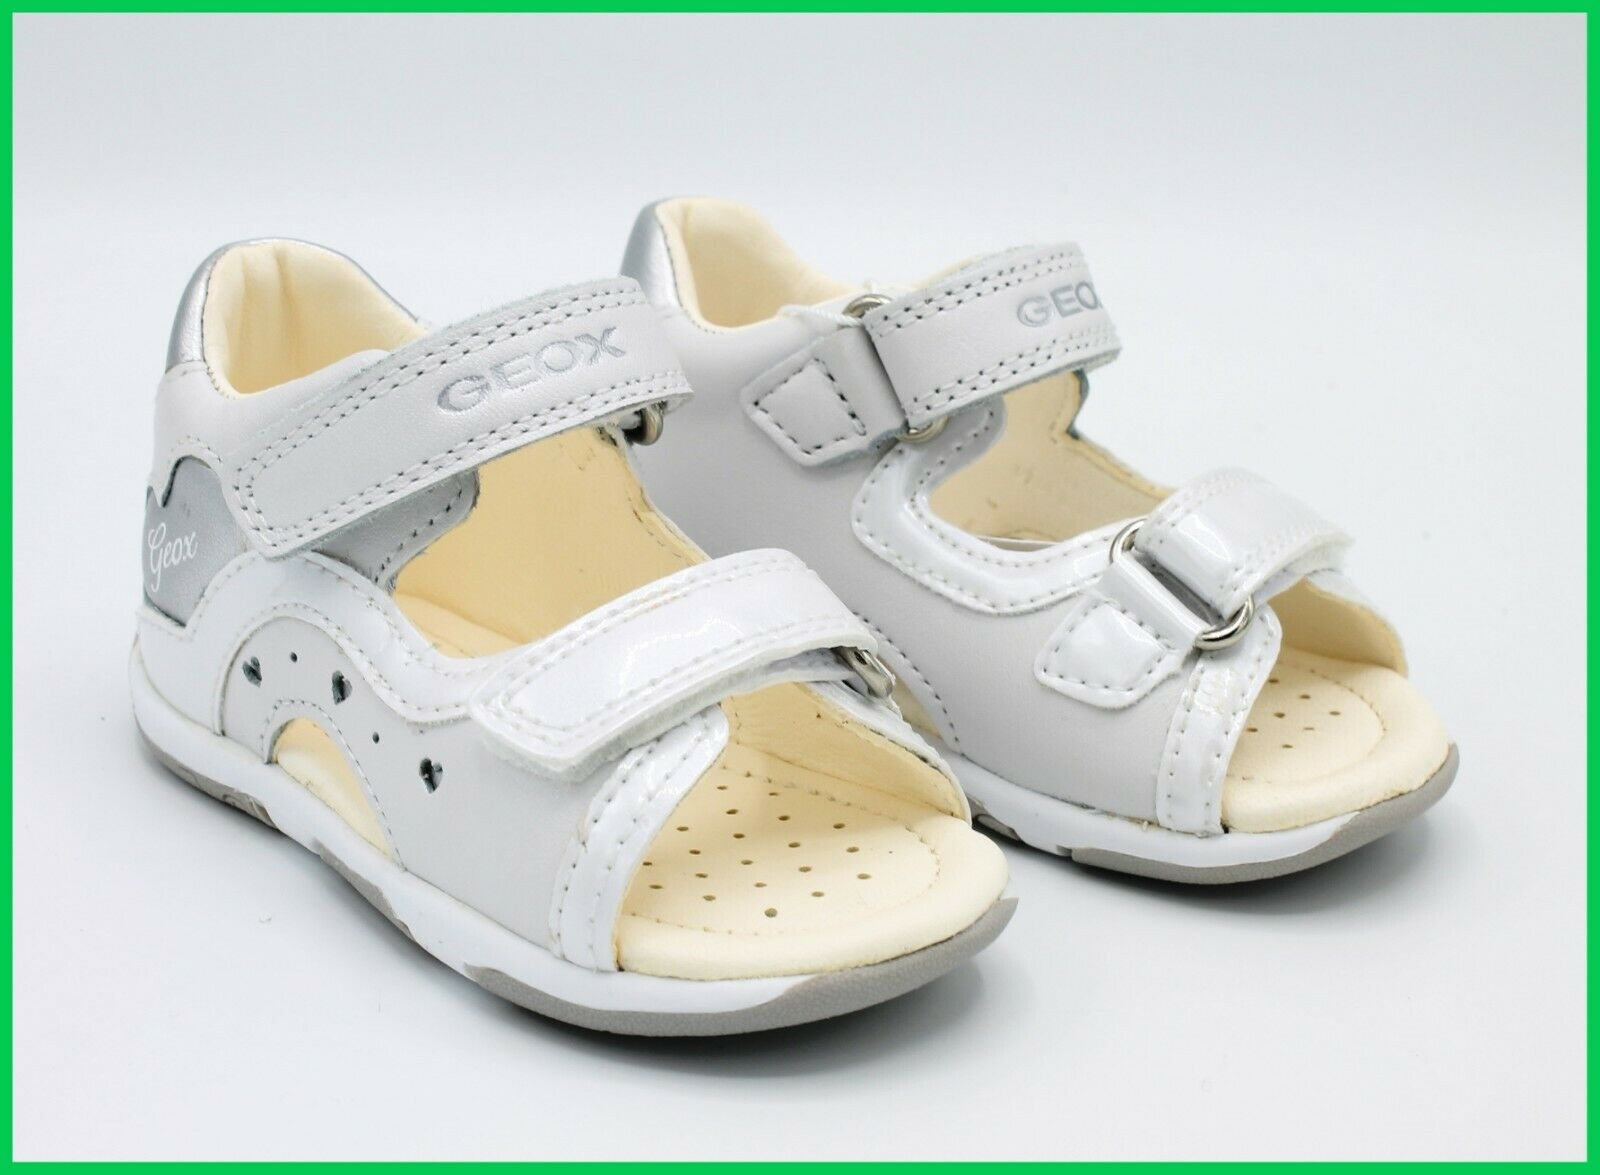 Geox Sandals Baby First Steps Elegant Summer Shoes for Baby Girl Leather 22